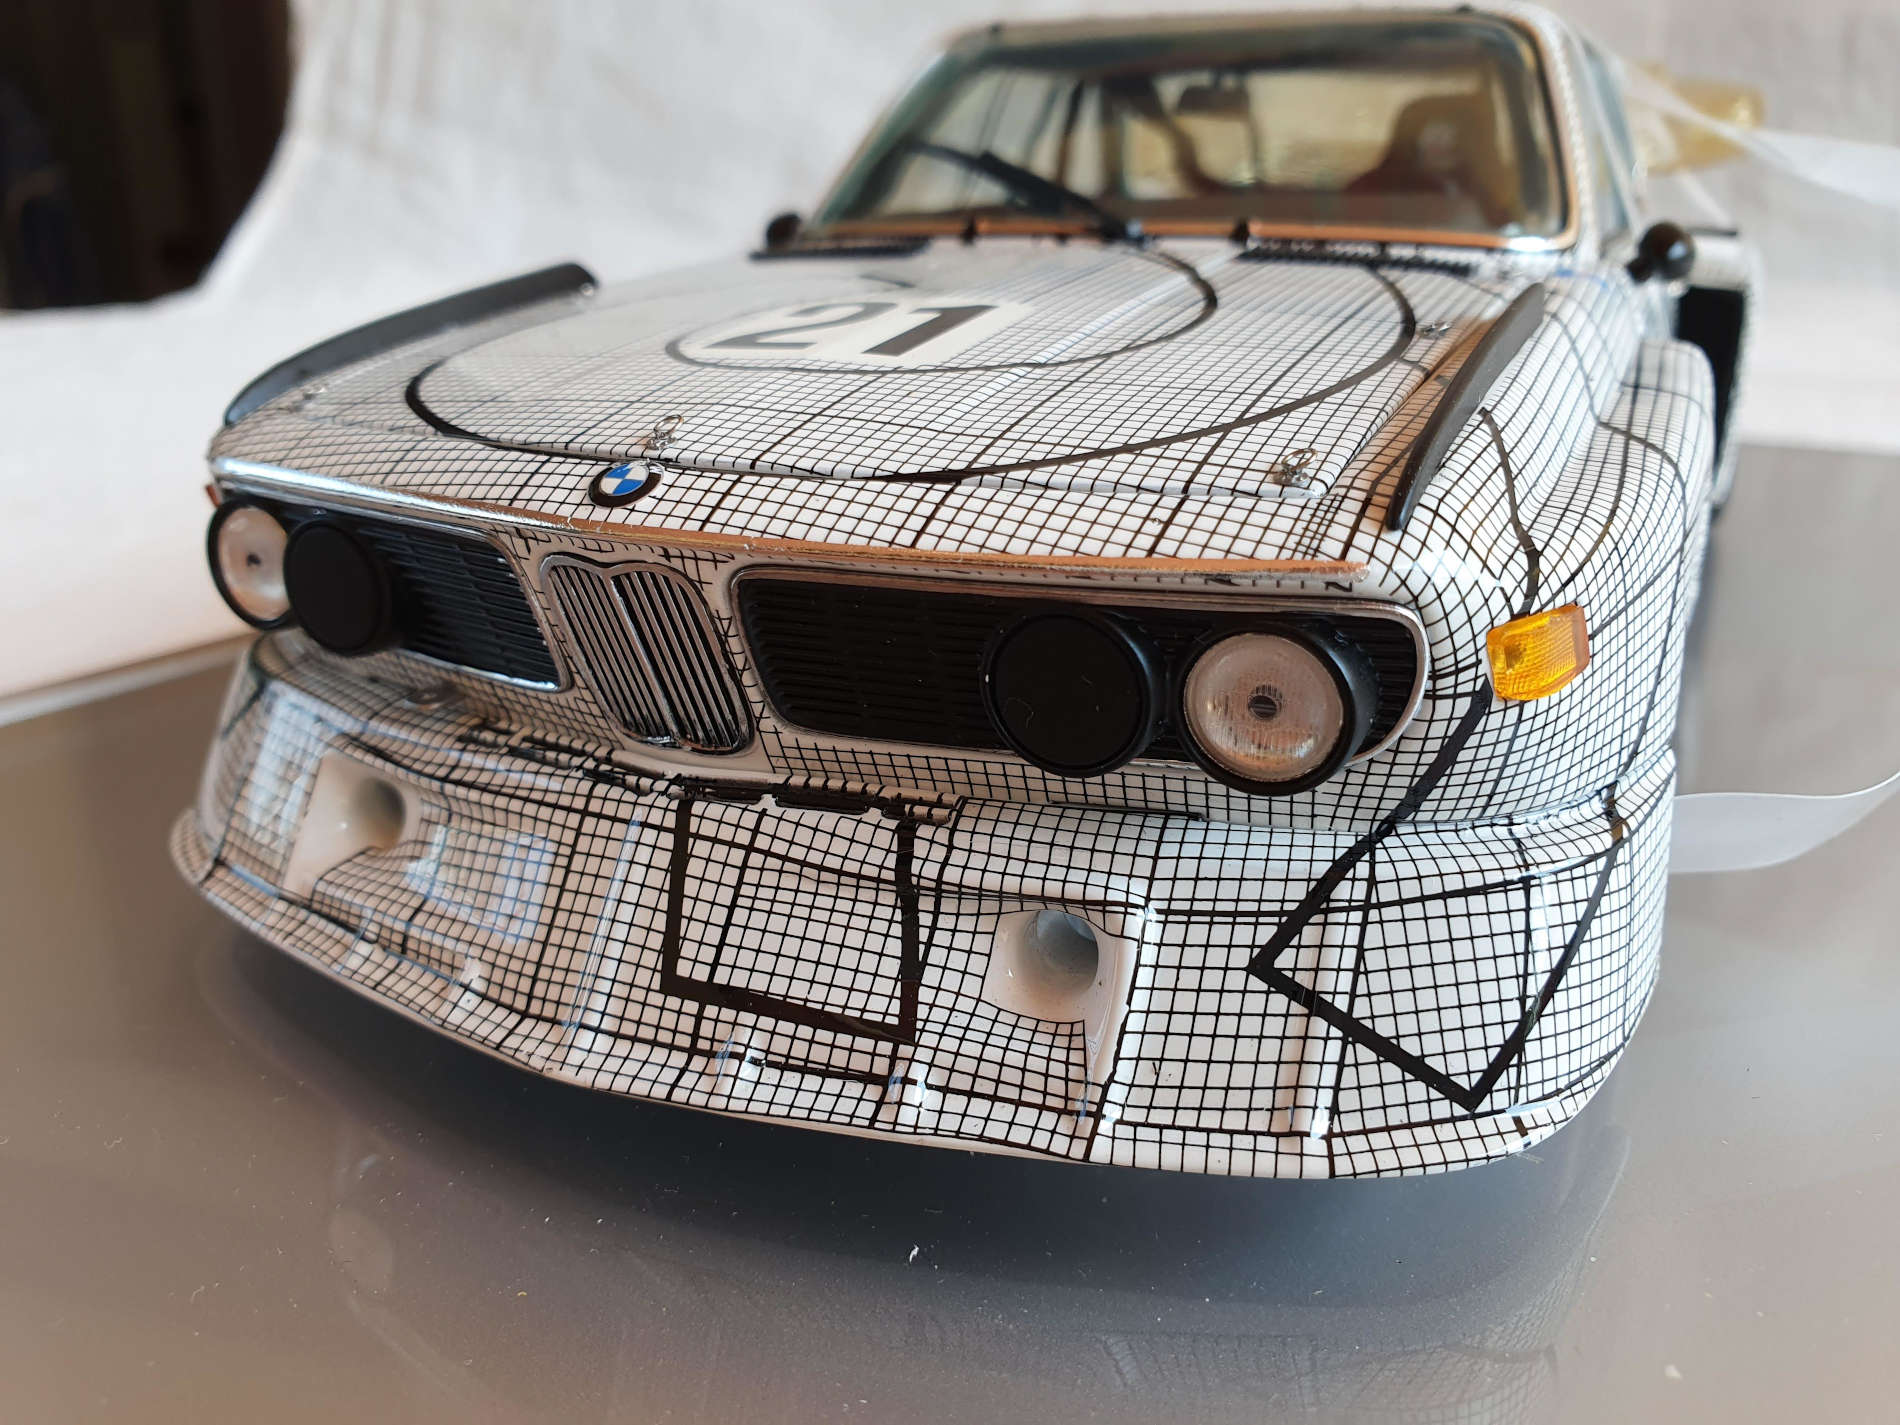 bmw sharknose details in 1:18